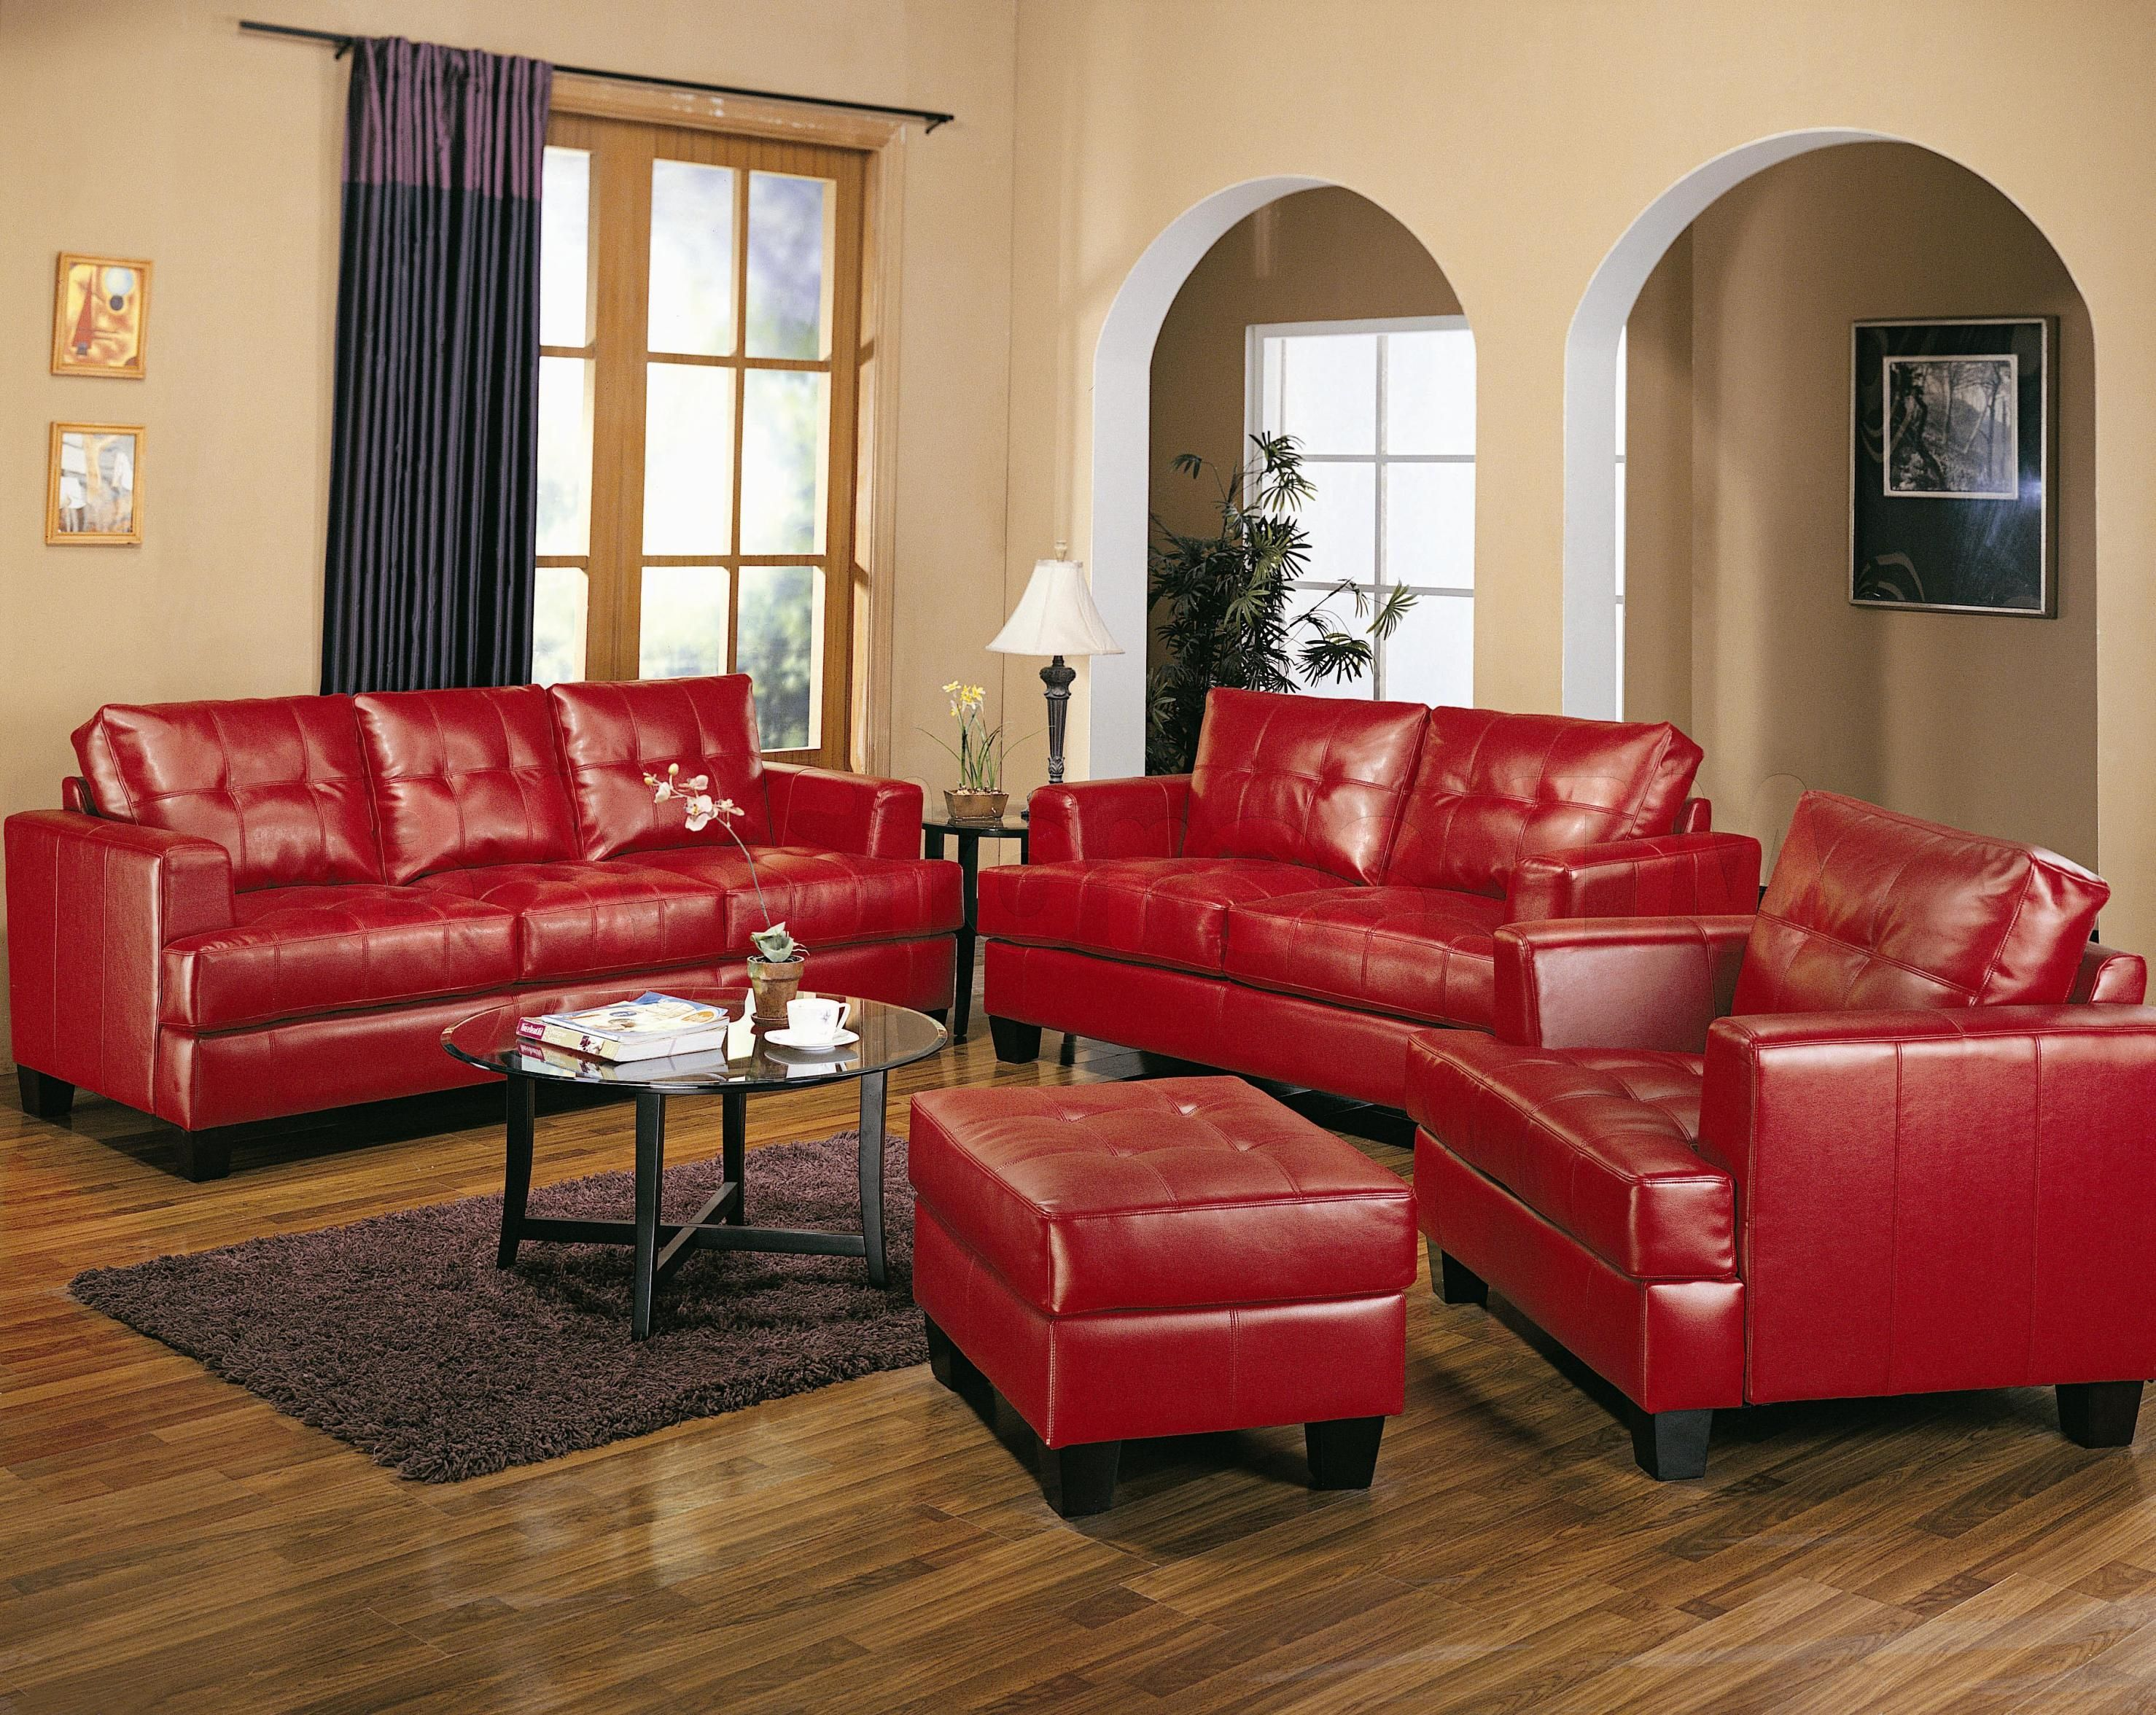 Fresh Red Couch Sofa Beautiful Red Couch Sofa 36 Sofa Design Ideas With Red Couch Sofa Ht Leather Living Room Set Red Couch Living Room Living Room Leather